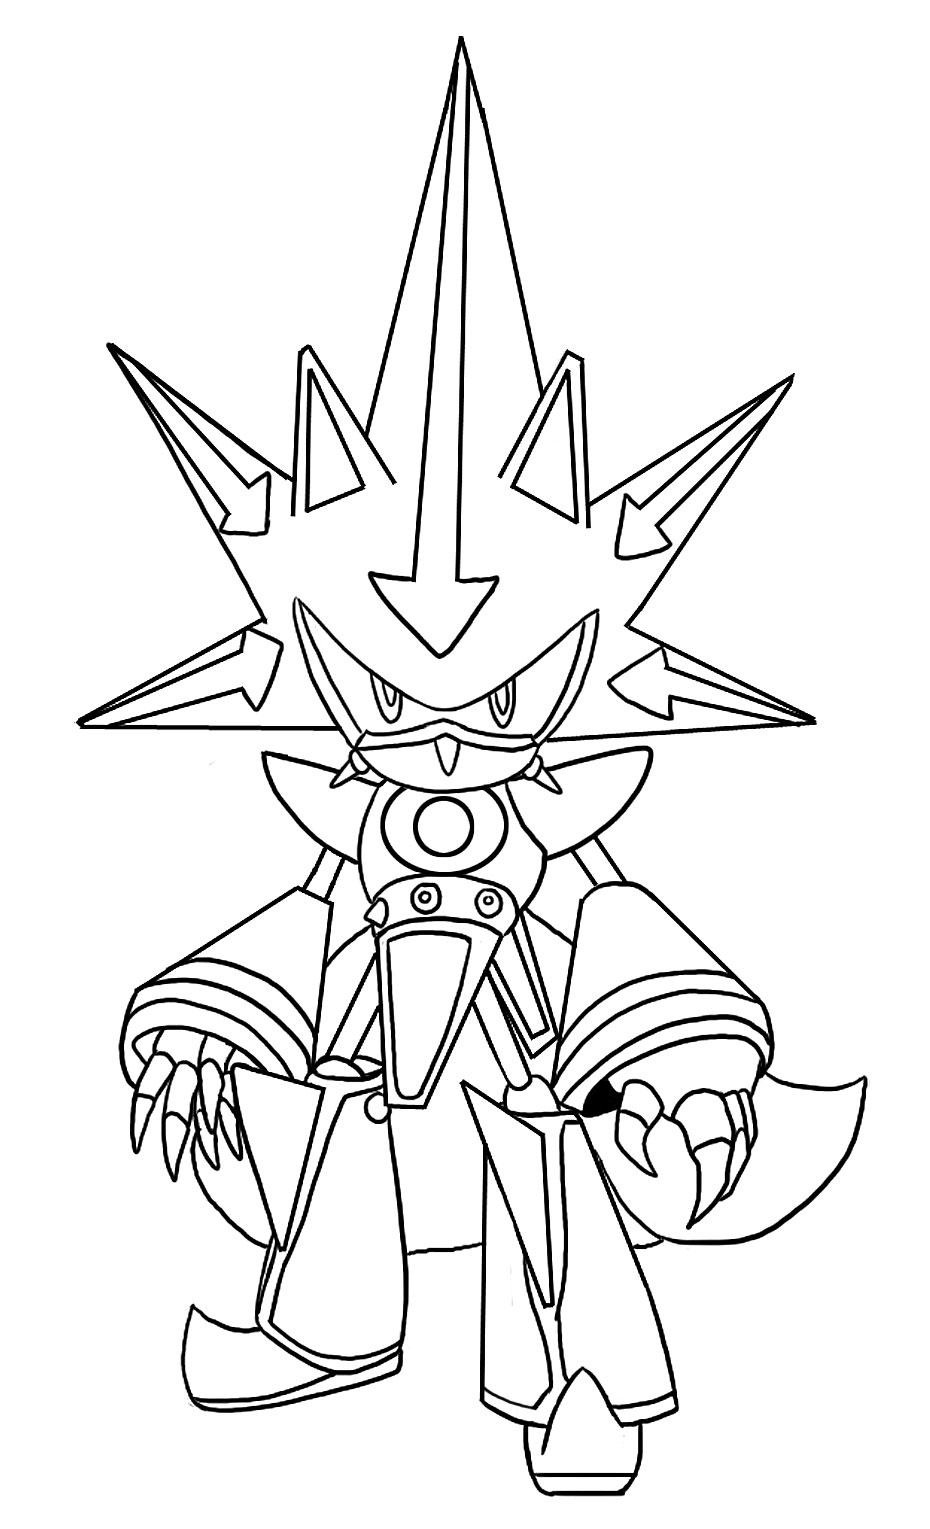 coloring pages sonic free printable super sonic coloring pages liste 20 à 40 pages sonic coloring